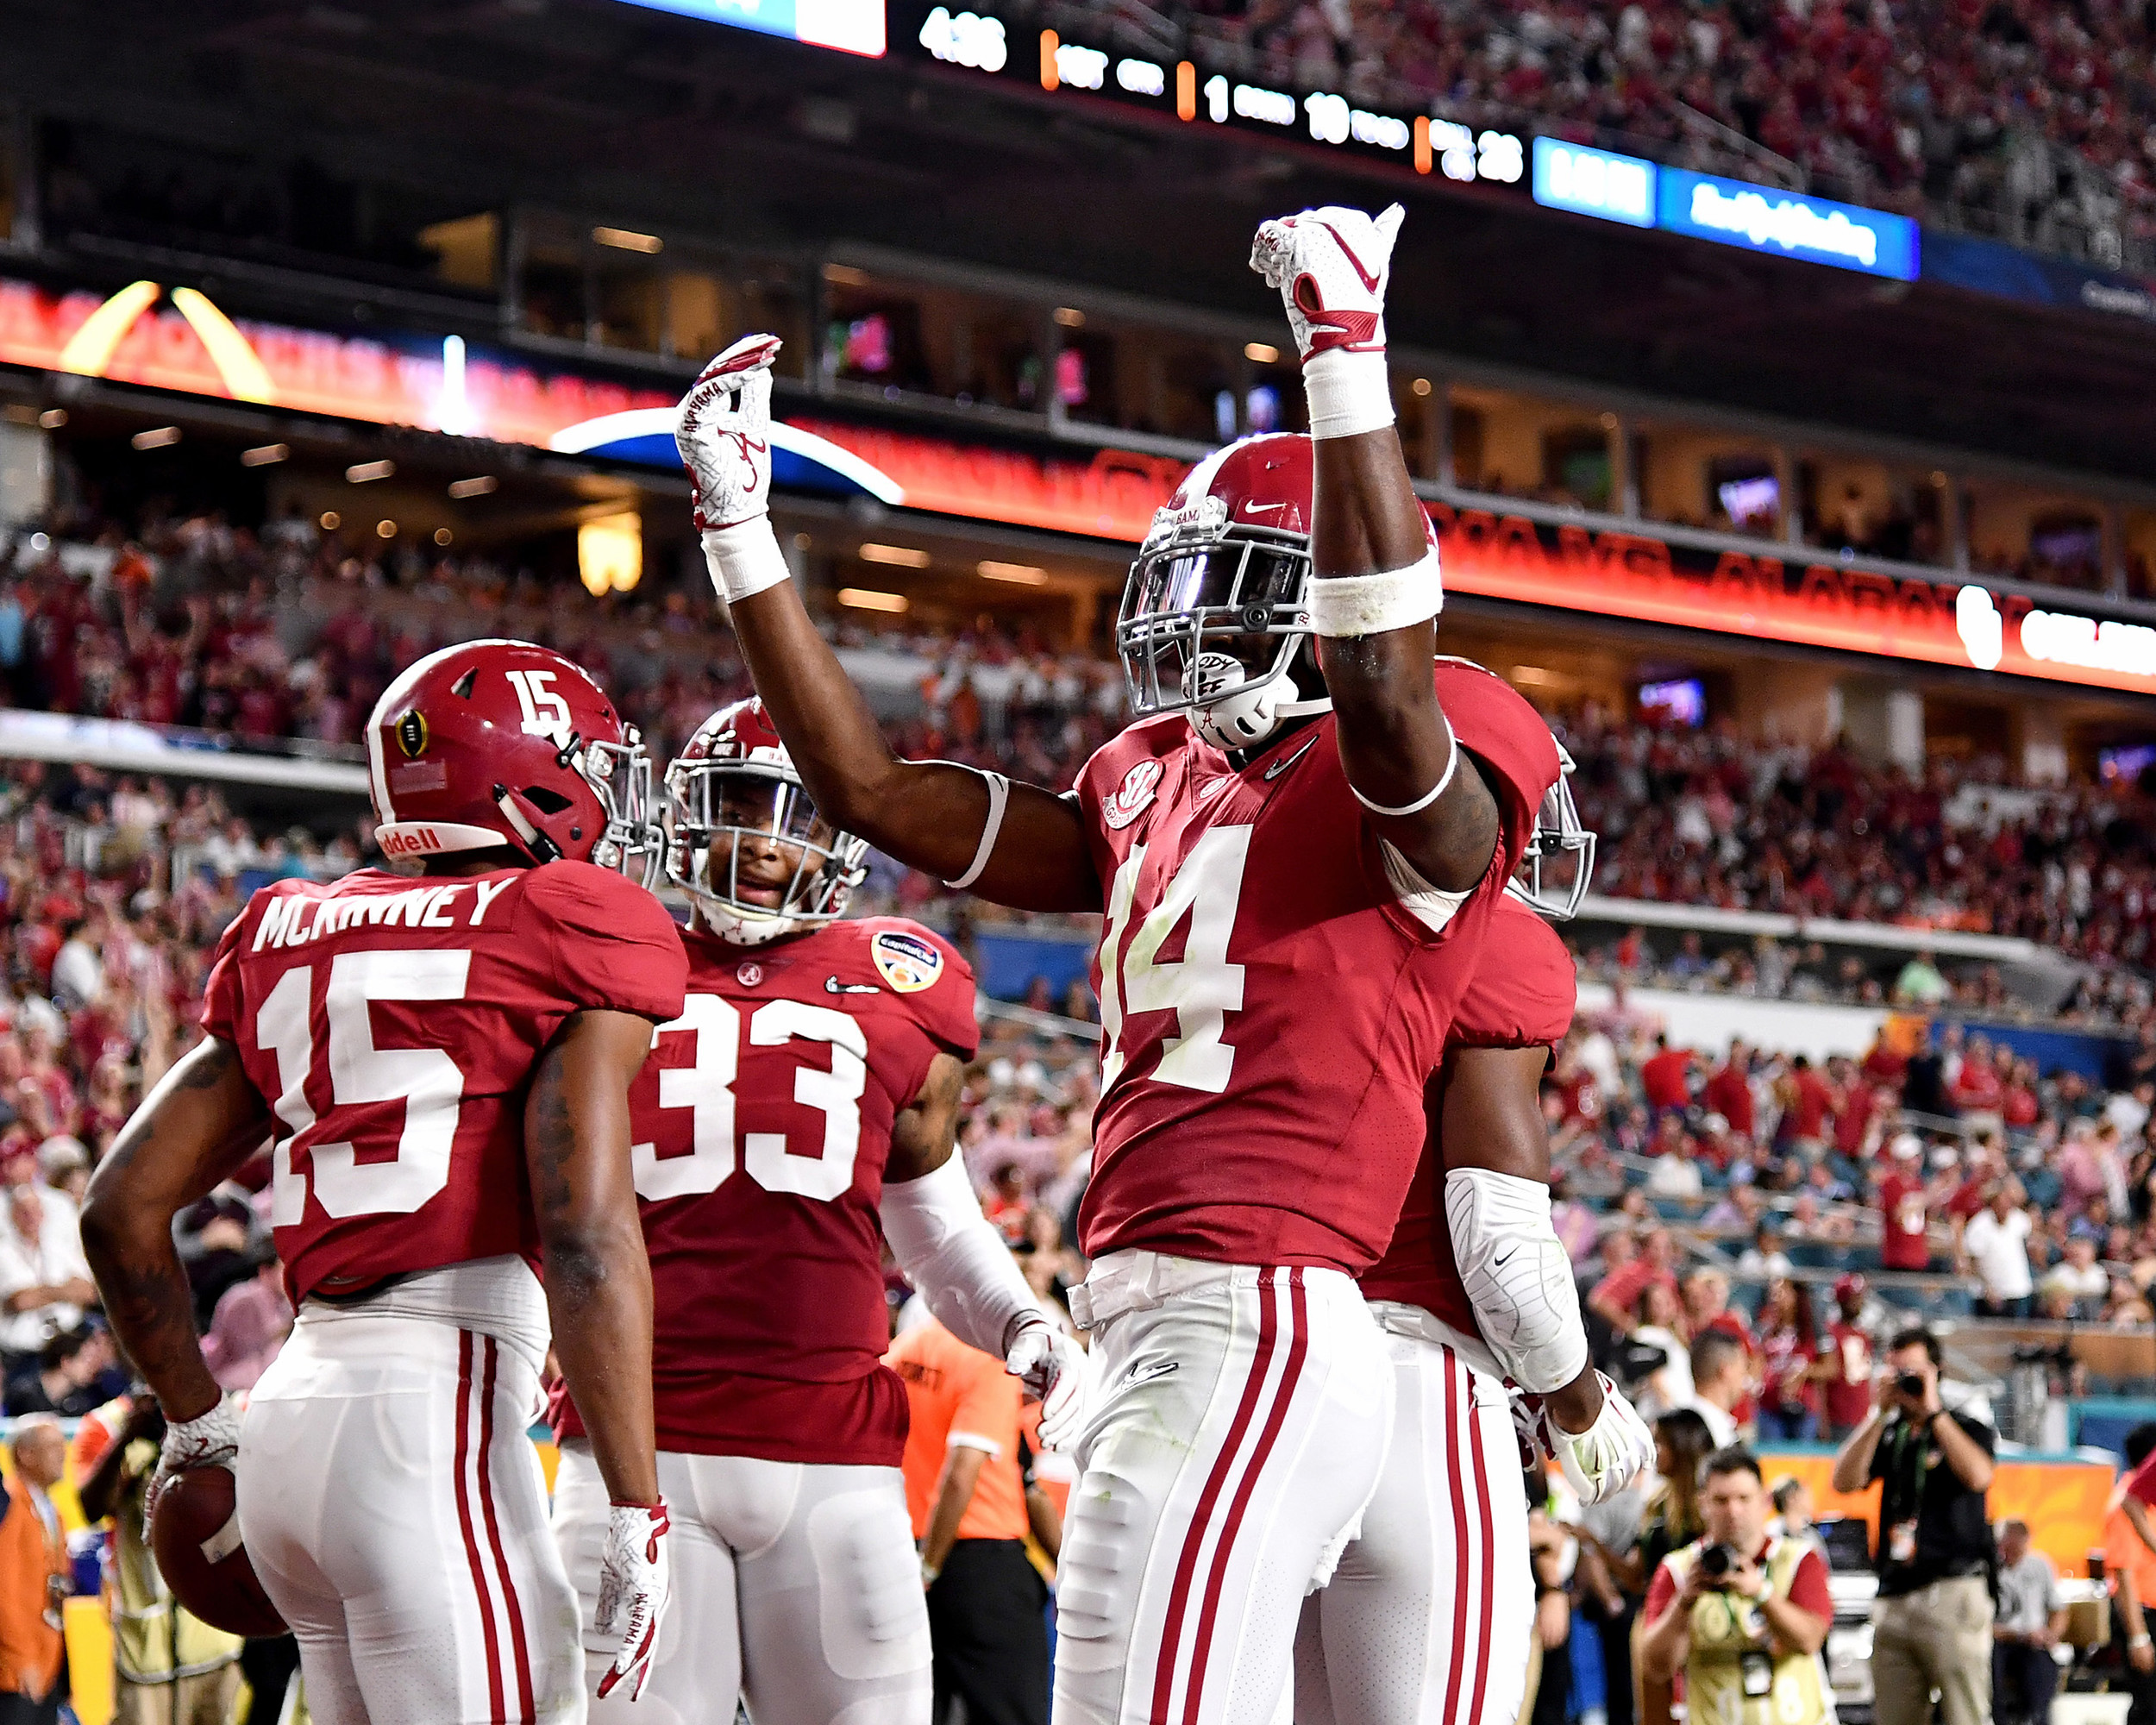 From the first half of the Capital One Orange Bowl, featuring the Alabama Crimson Tide and the Oklahoma Sooners, at Hard Rock Stadium in Miami Gardens, Fla., Saturday, Dec. 29, 2018. Alabama wins 45-34. (Photo by Lee Walls)